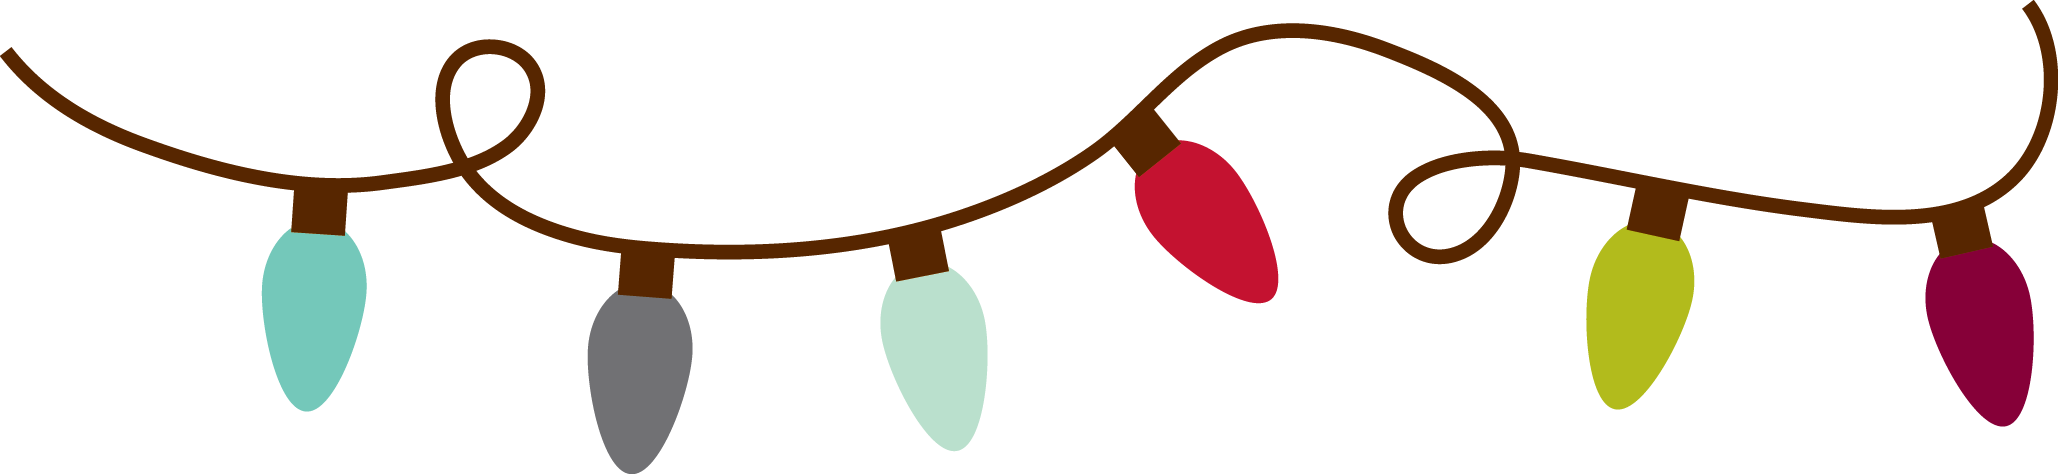 Christmas Lights Border - Transparent Png